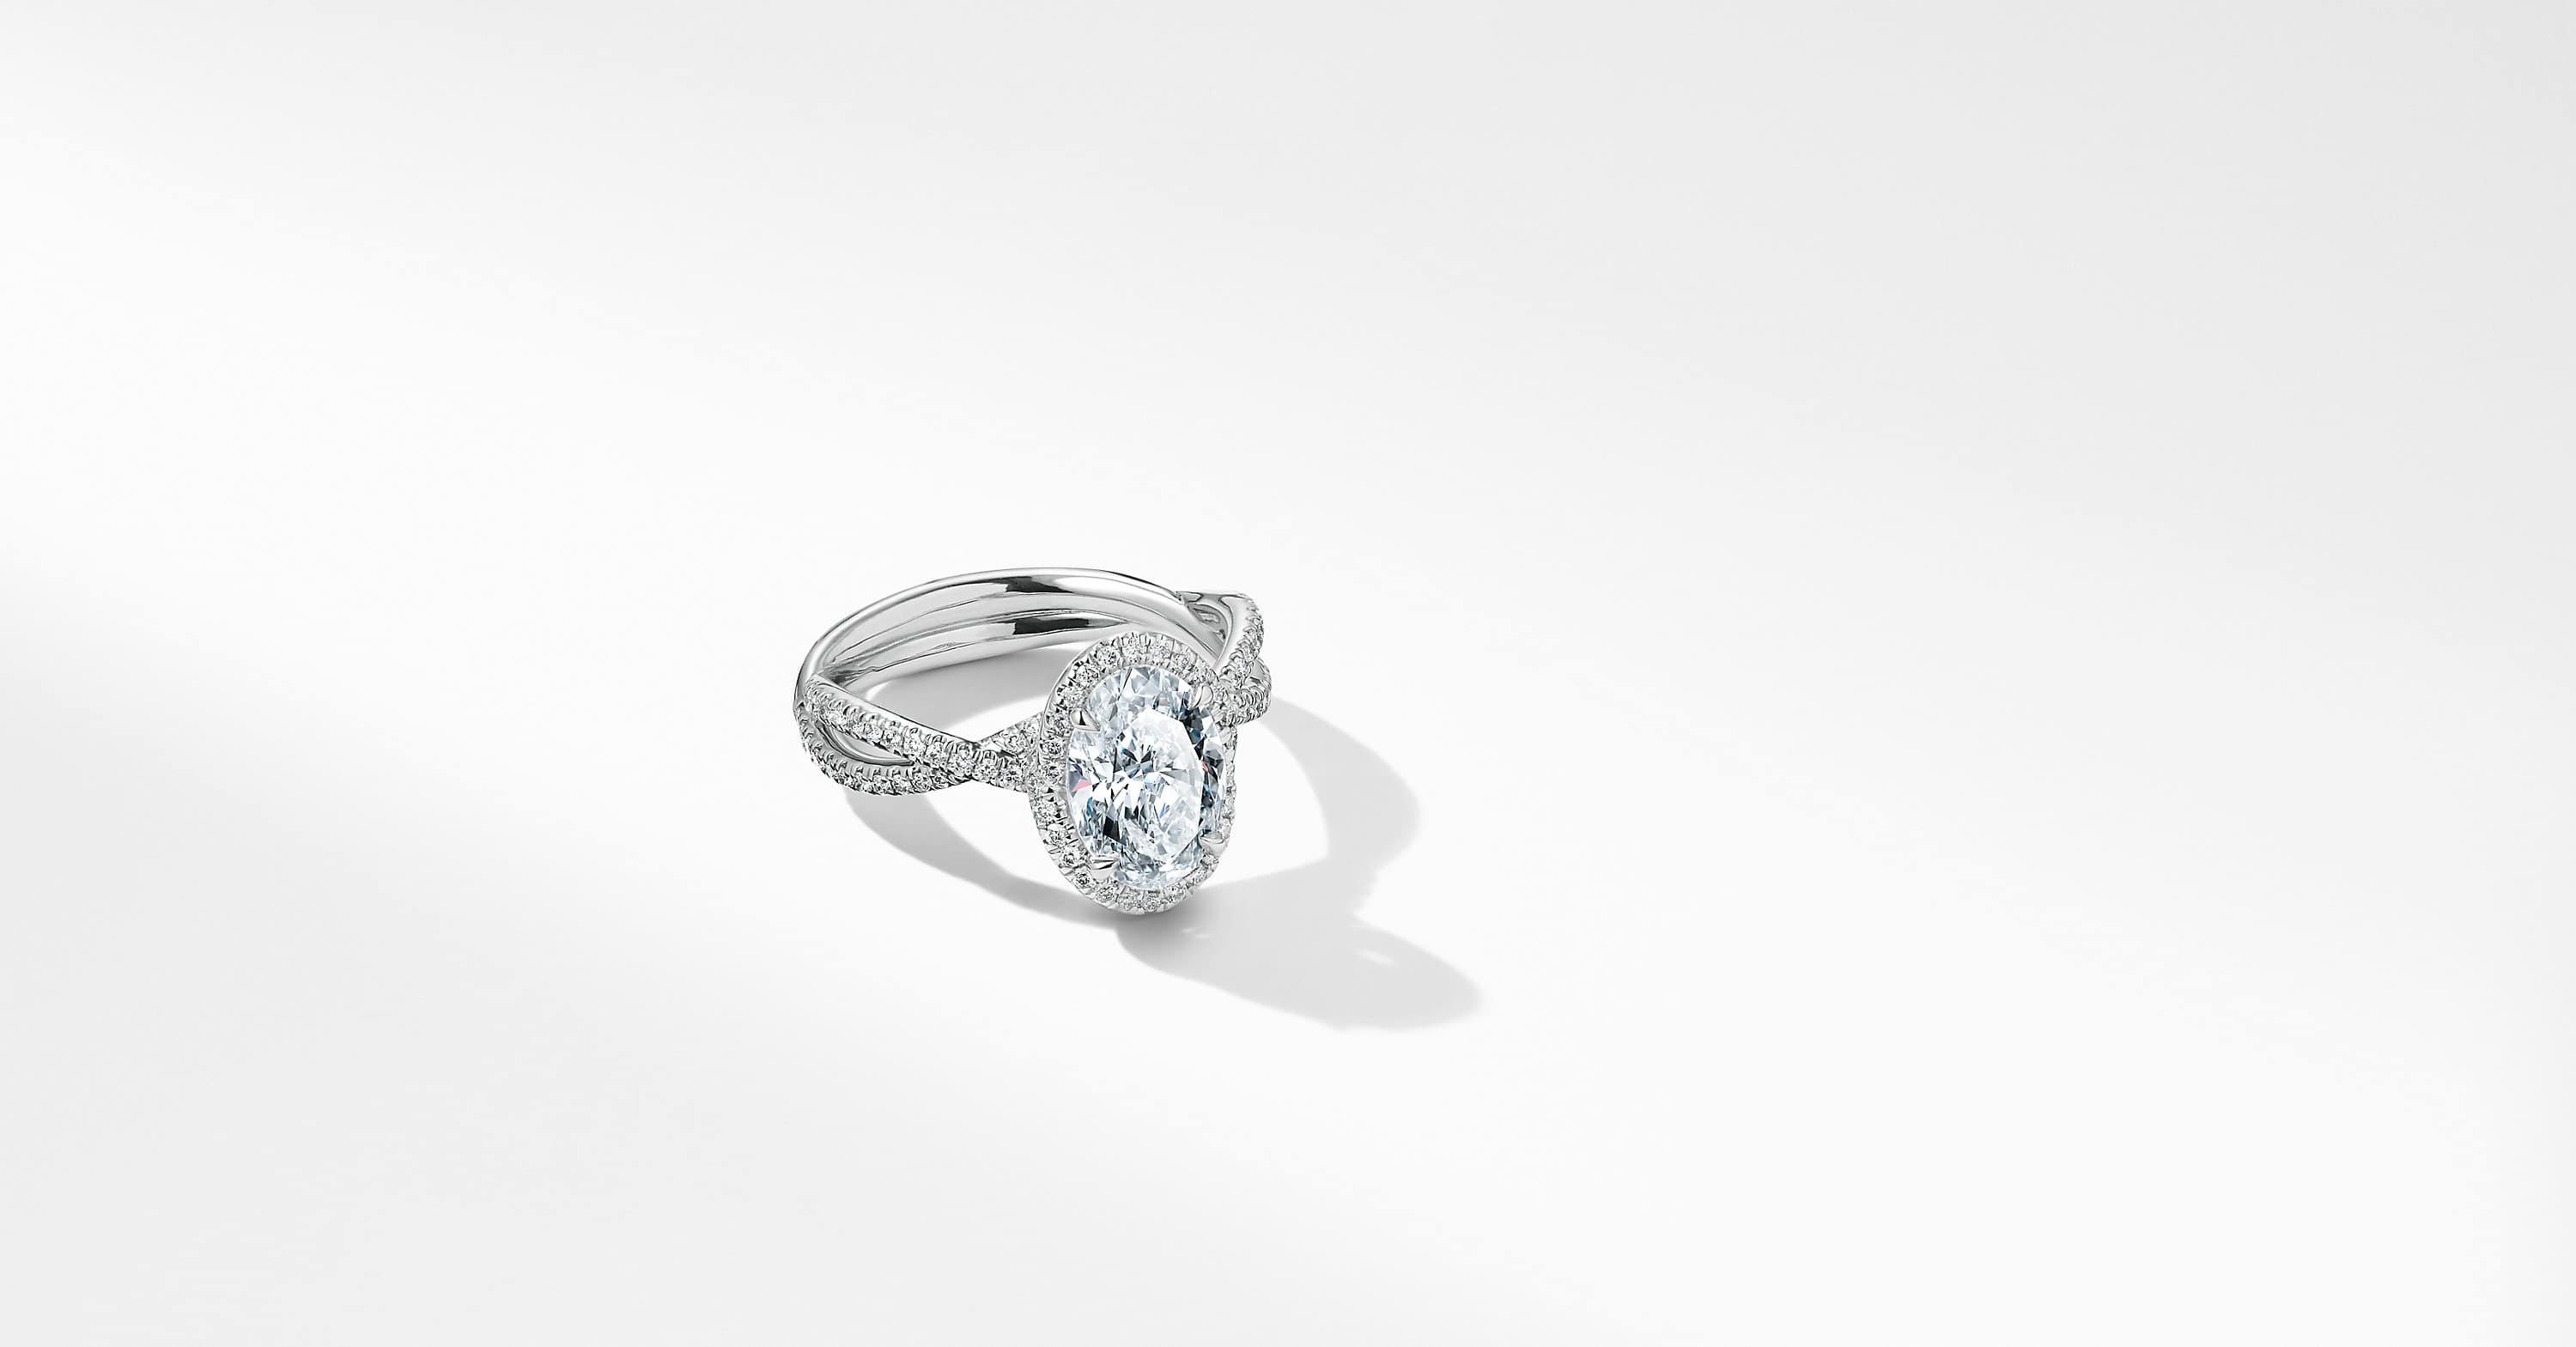 DY Lanai Full Pave Engagement Ring with Diamonds in Platinum, Oval